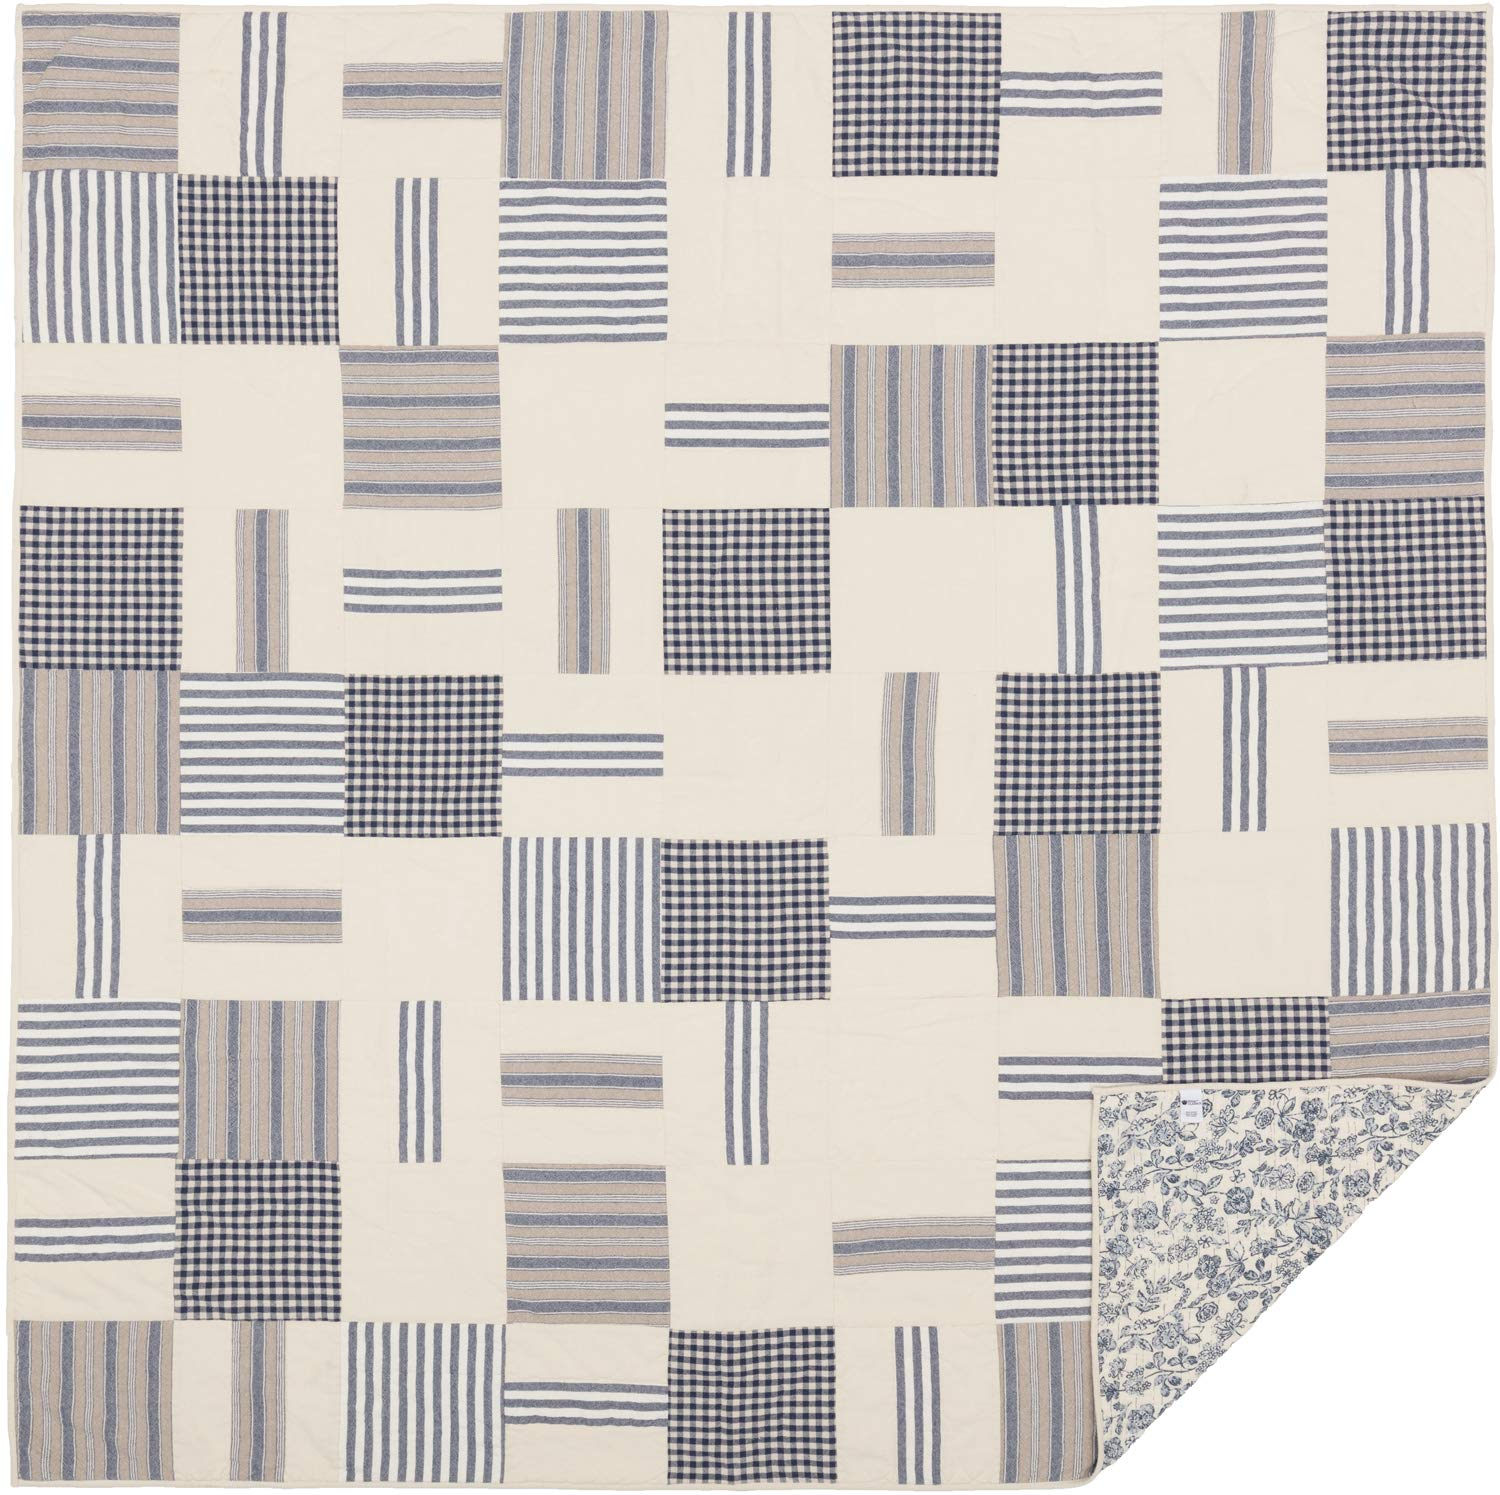 Piper Classics Doylestown Blue Queen Patchwork Quilt, Gingham Checks, Grain Sack & Ticking Stripes, Reversible to Floral Print, Blue & Cream Vintage Farmhouse Bedding, Rustic Country, Cottage Bedroom by Piper Classics (Image #7)